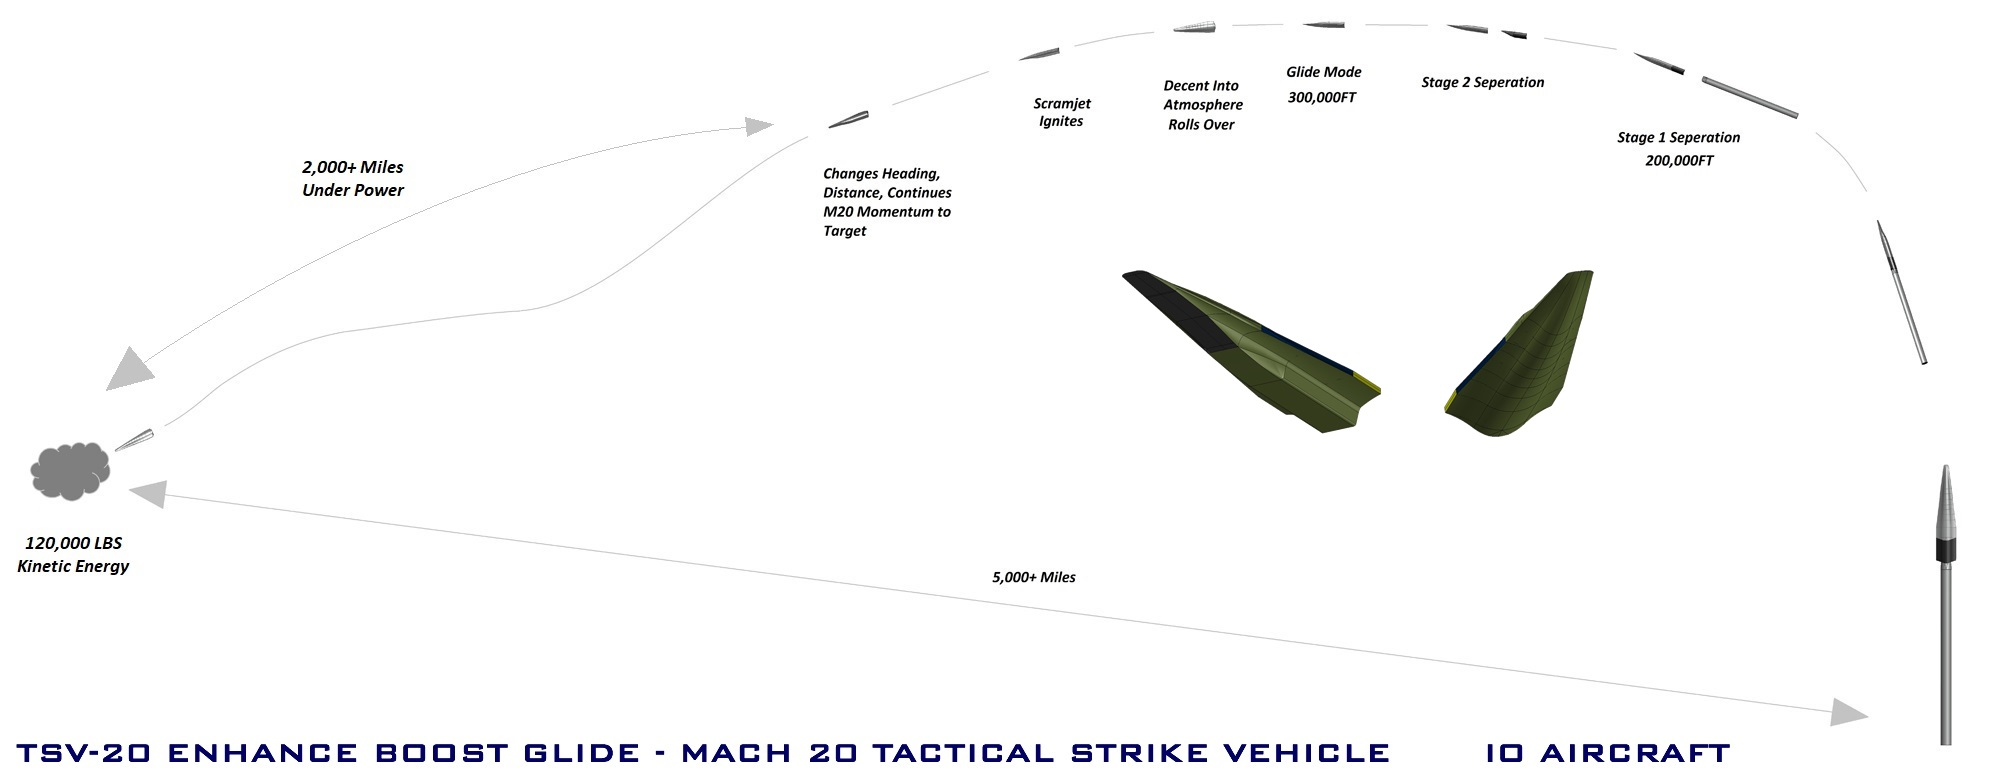 IO Aircraft - TSV-20 Hypersonic Missile